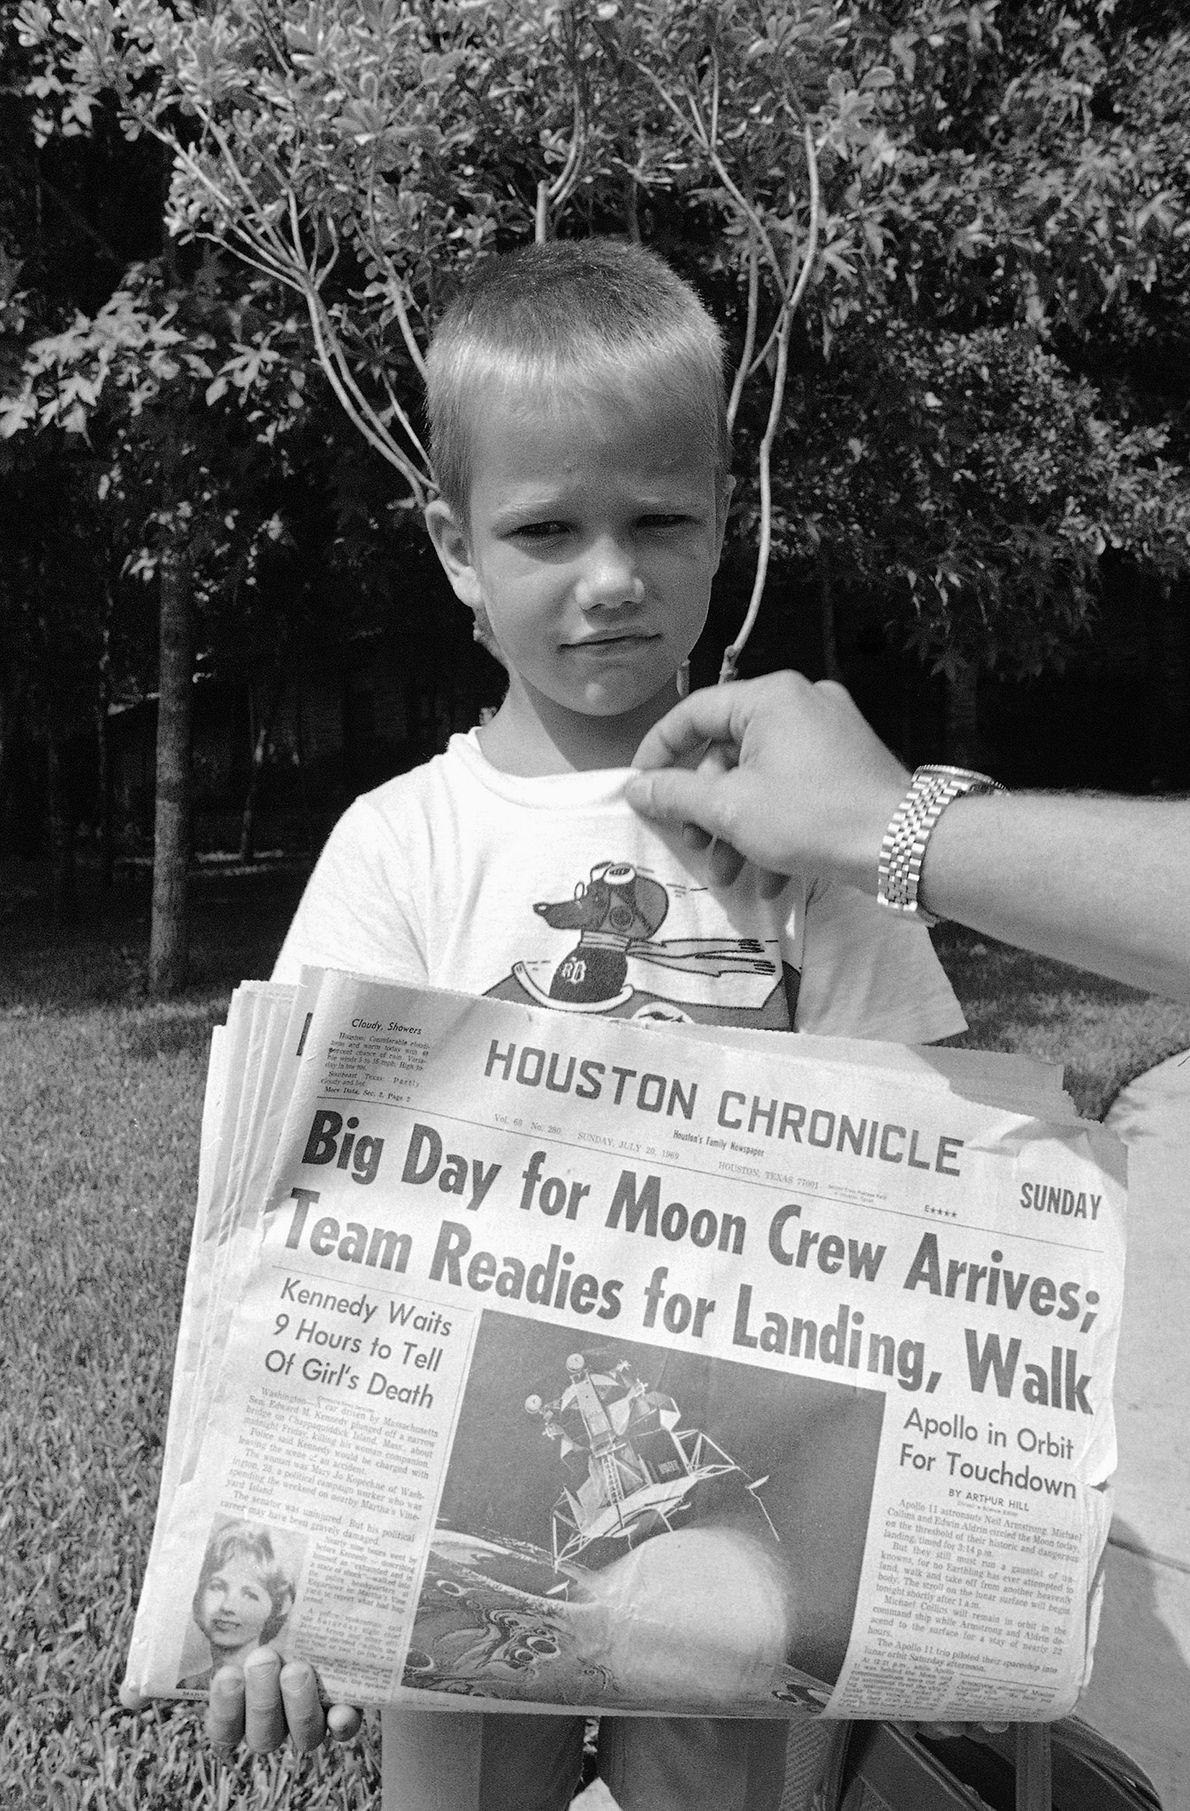 Six-year-old Mark Armstrong, son of Apollo 11 astronaut Neil Armstrong, holds the morning newspaper at the ...